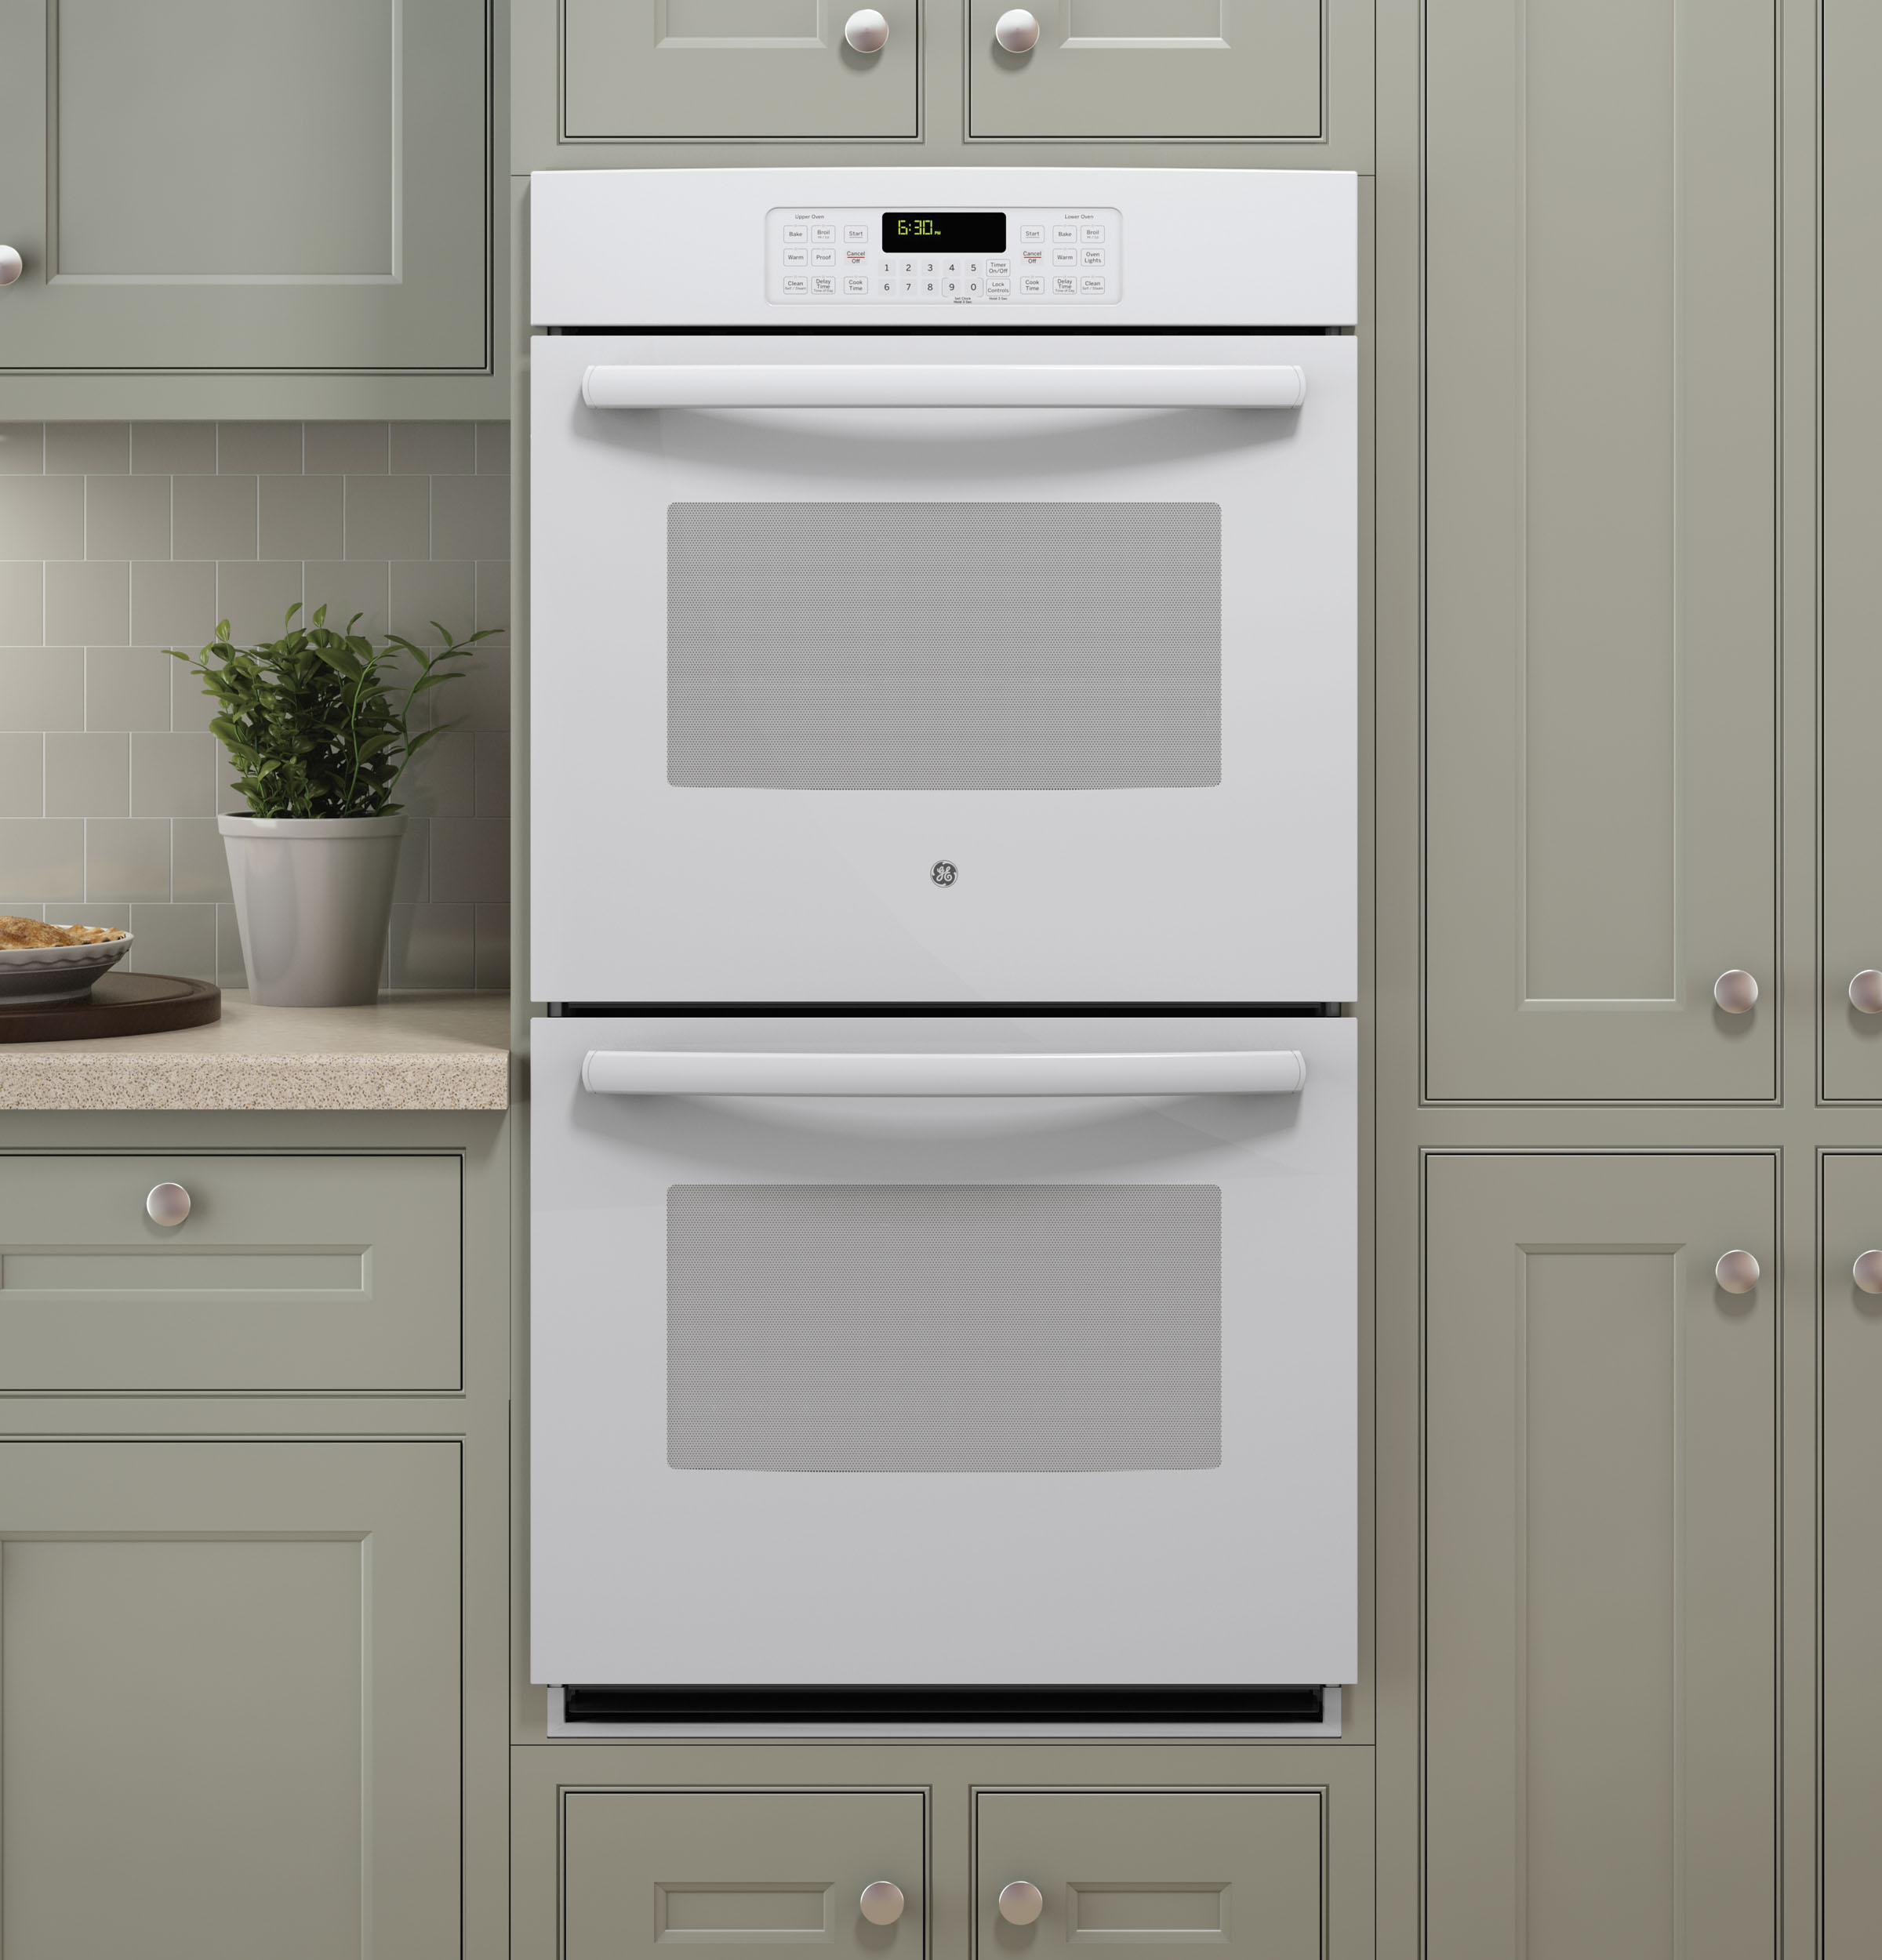 Built In Oven Cabinet: Super Built In Cabinet Oven @TB21